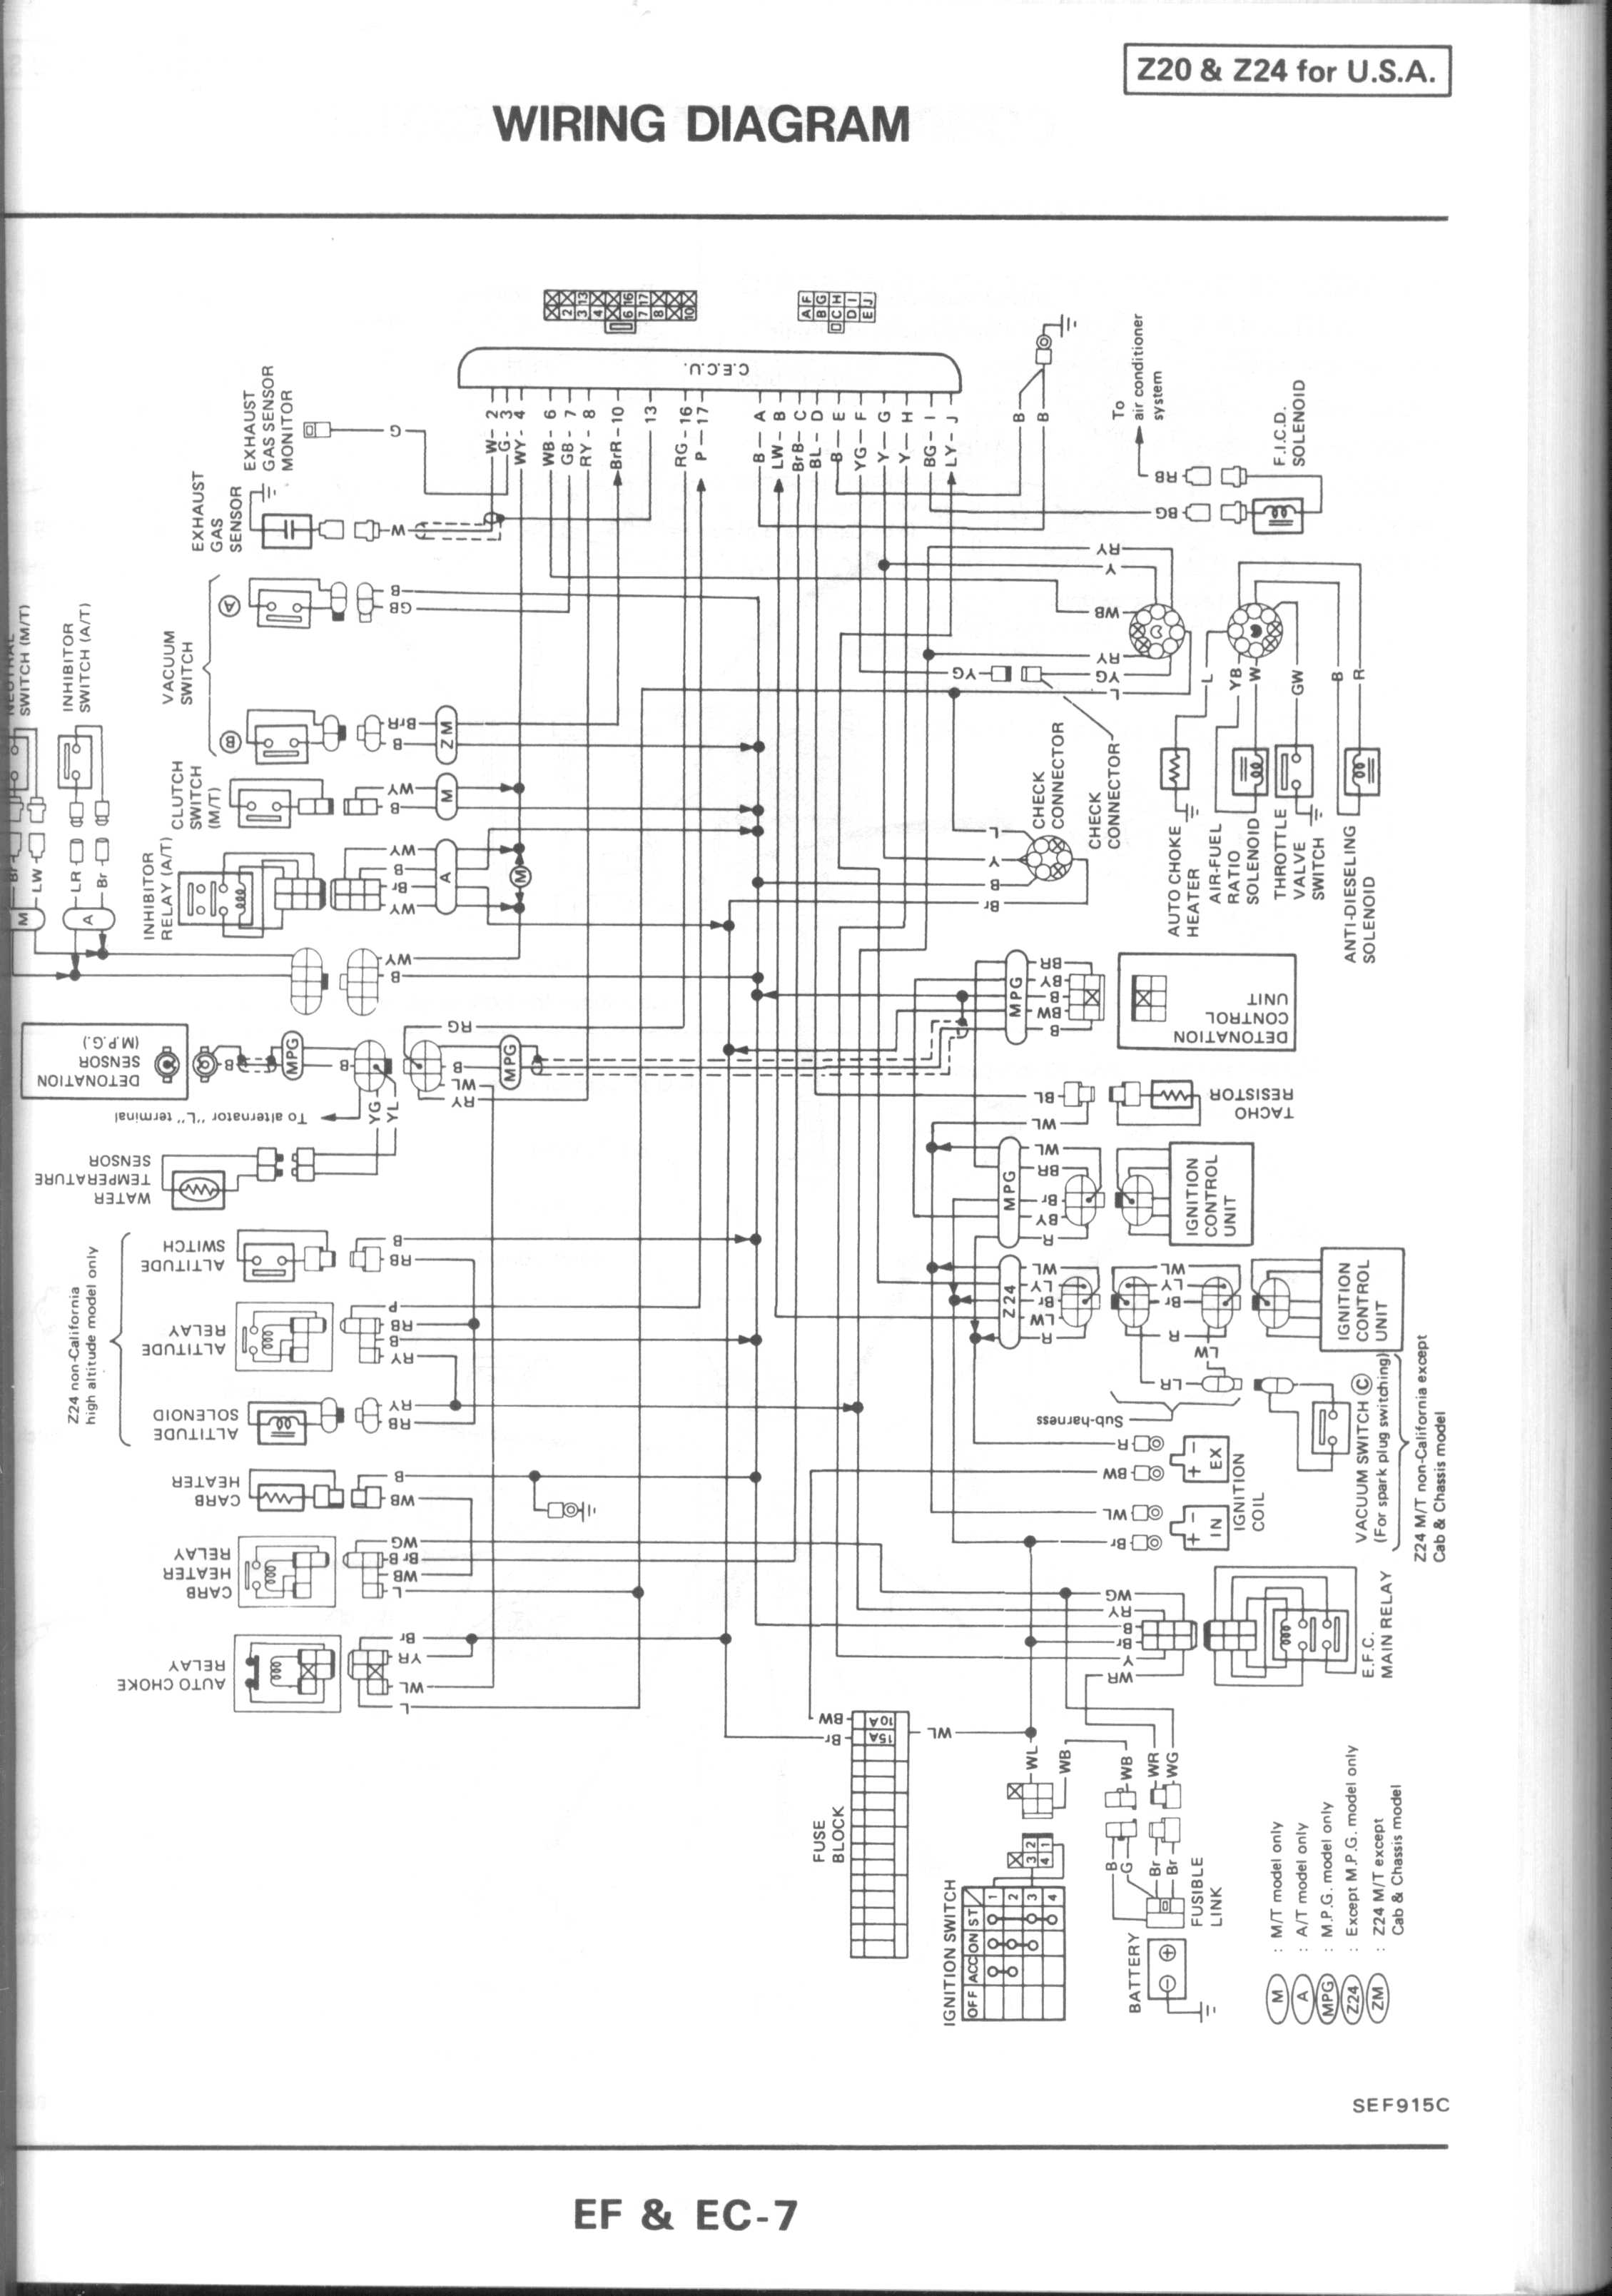 nissan d21 radio wiring diagram wiring diagrams and schematics nissan d21 wiring diagram diagrams and schematics